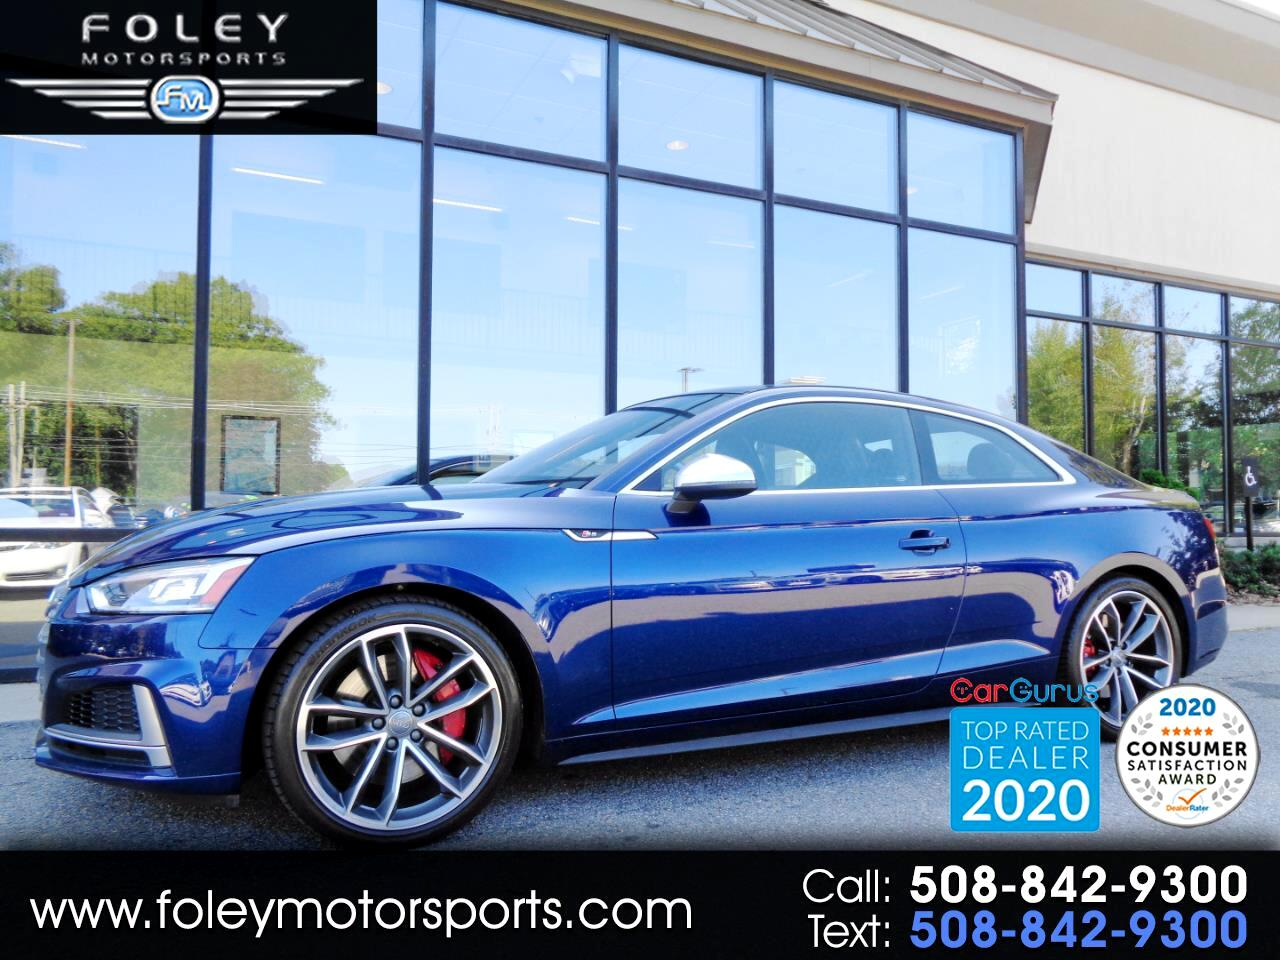 Audi S5 Coupe 3.0 TFSI Premium Plus 2018